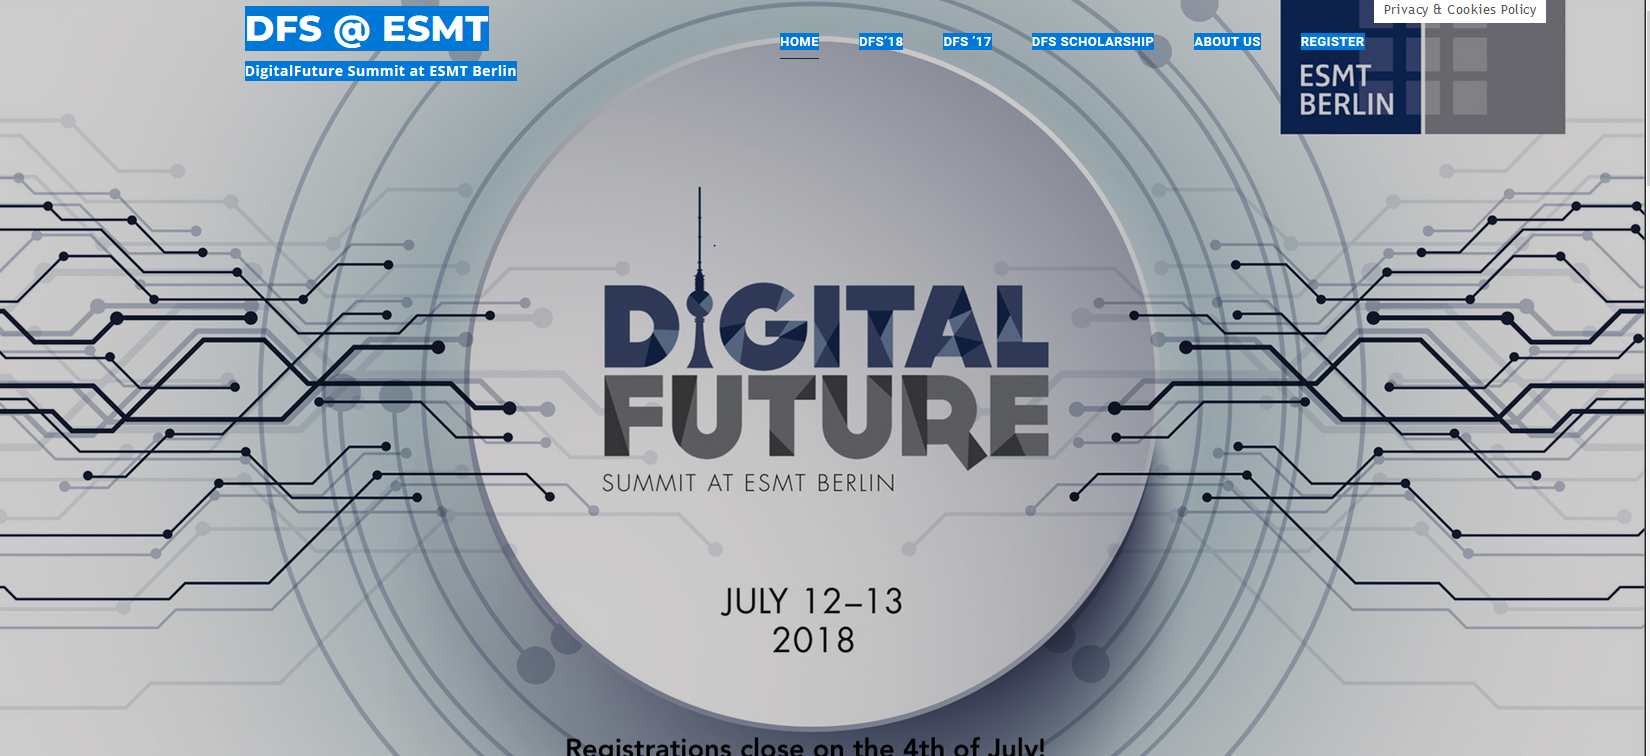 Digital Future Summit website image